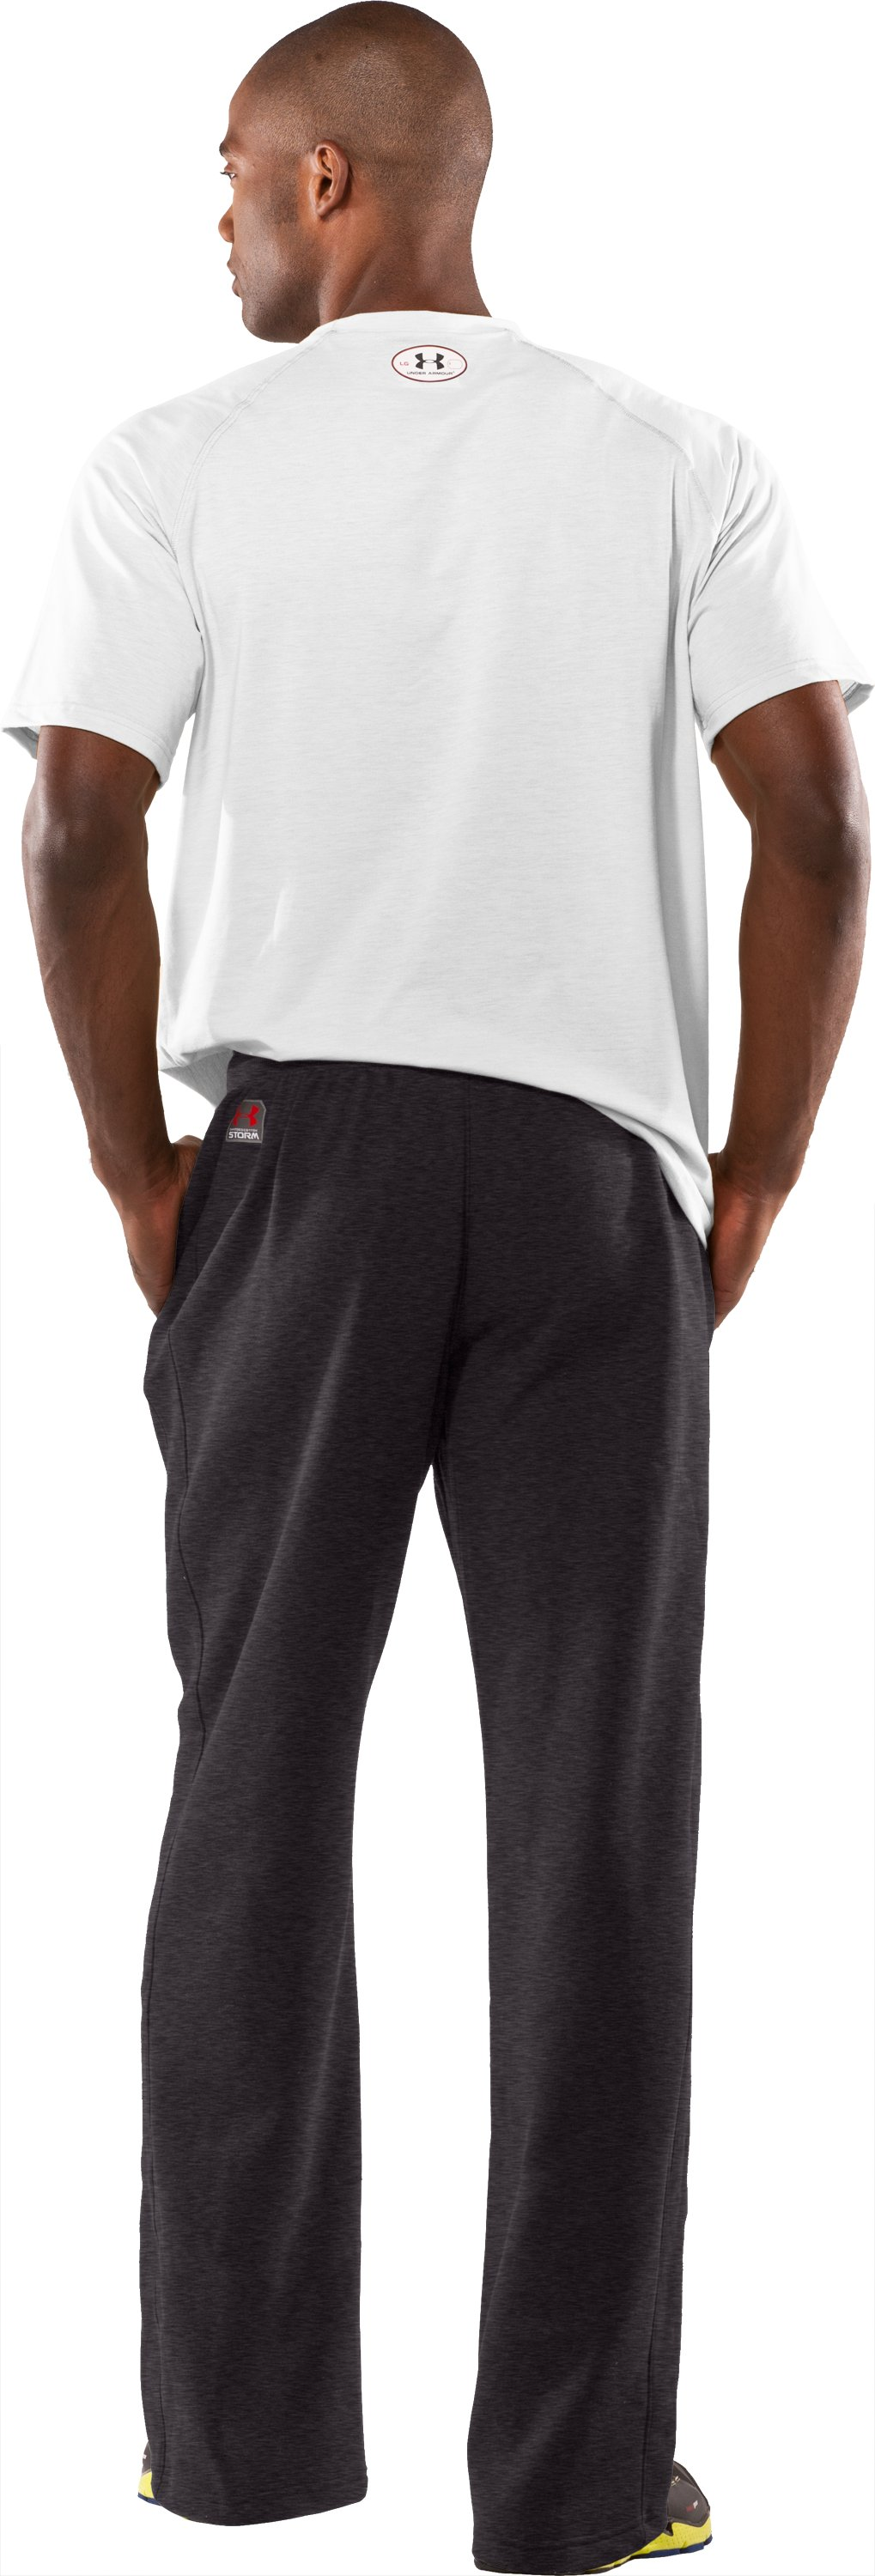 Men's Team Charged Cotton® Storm Pants, Carbon Heather, Back